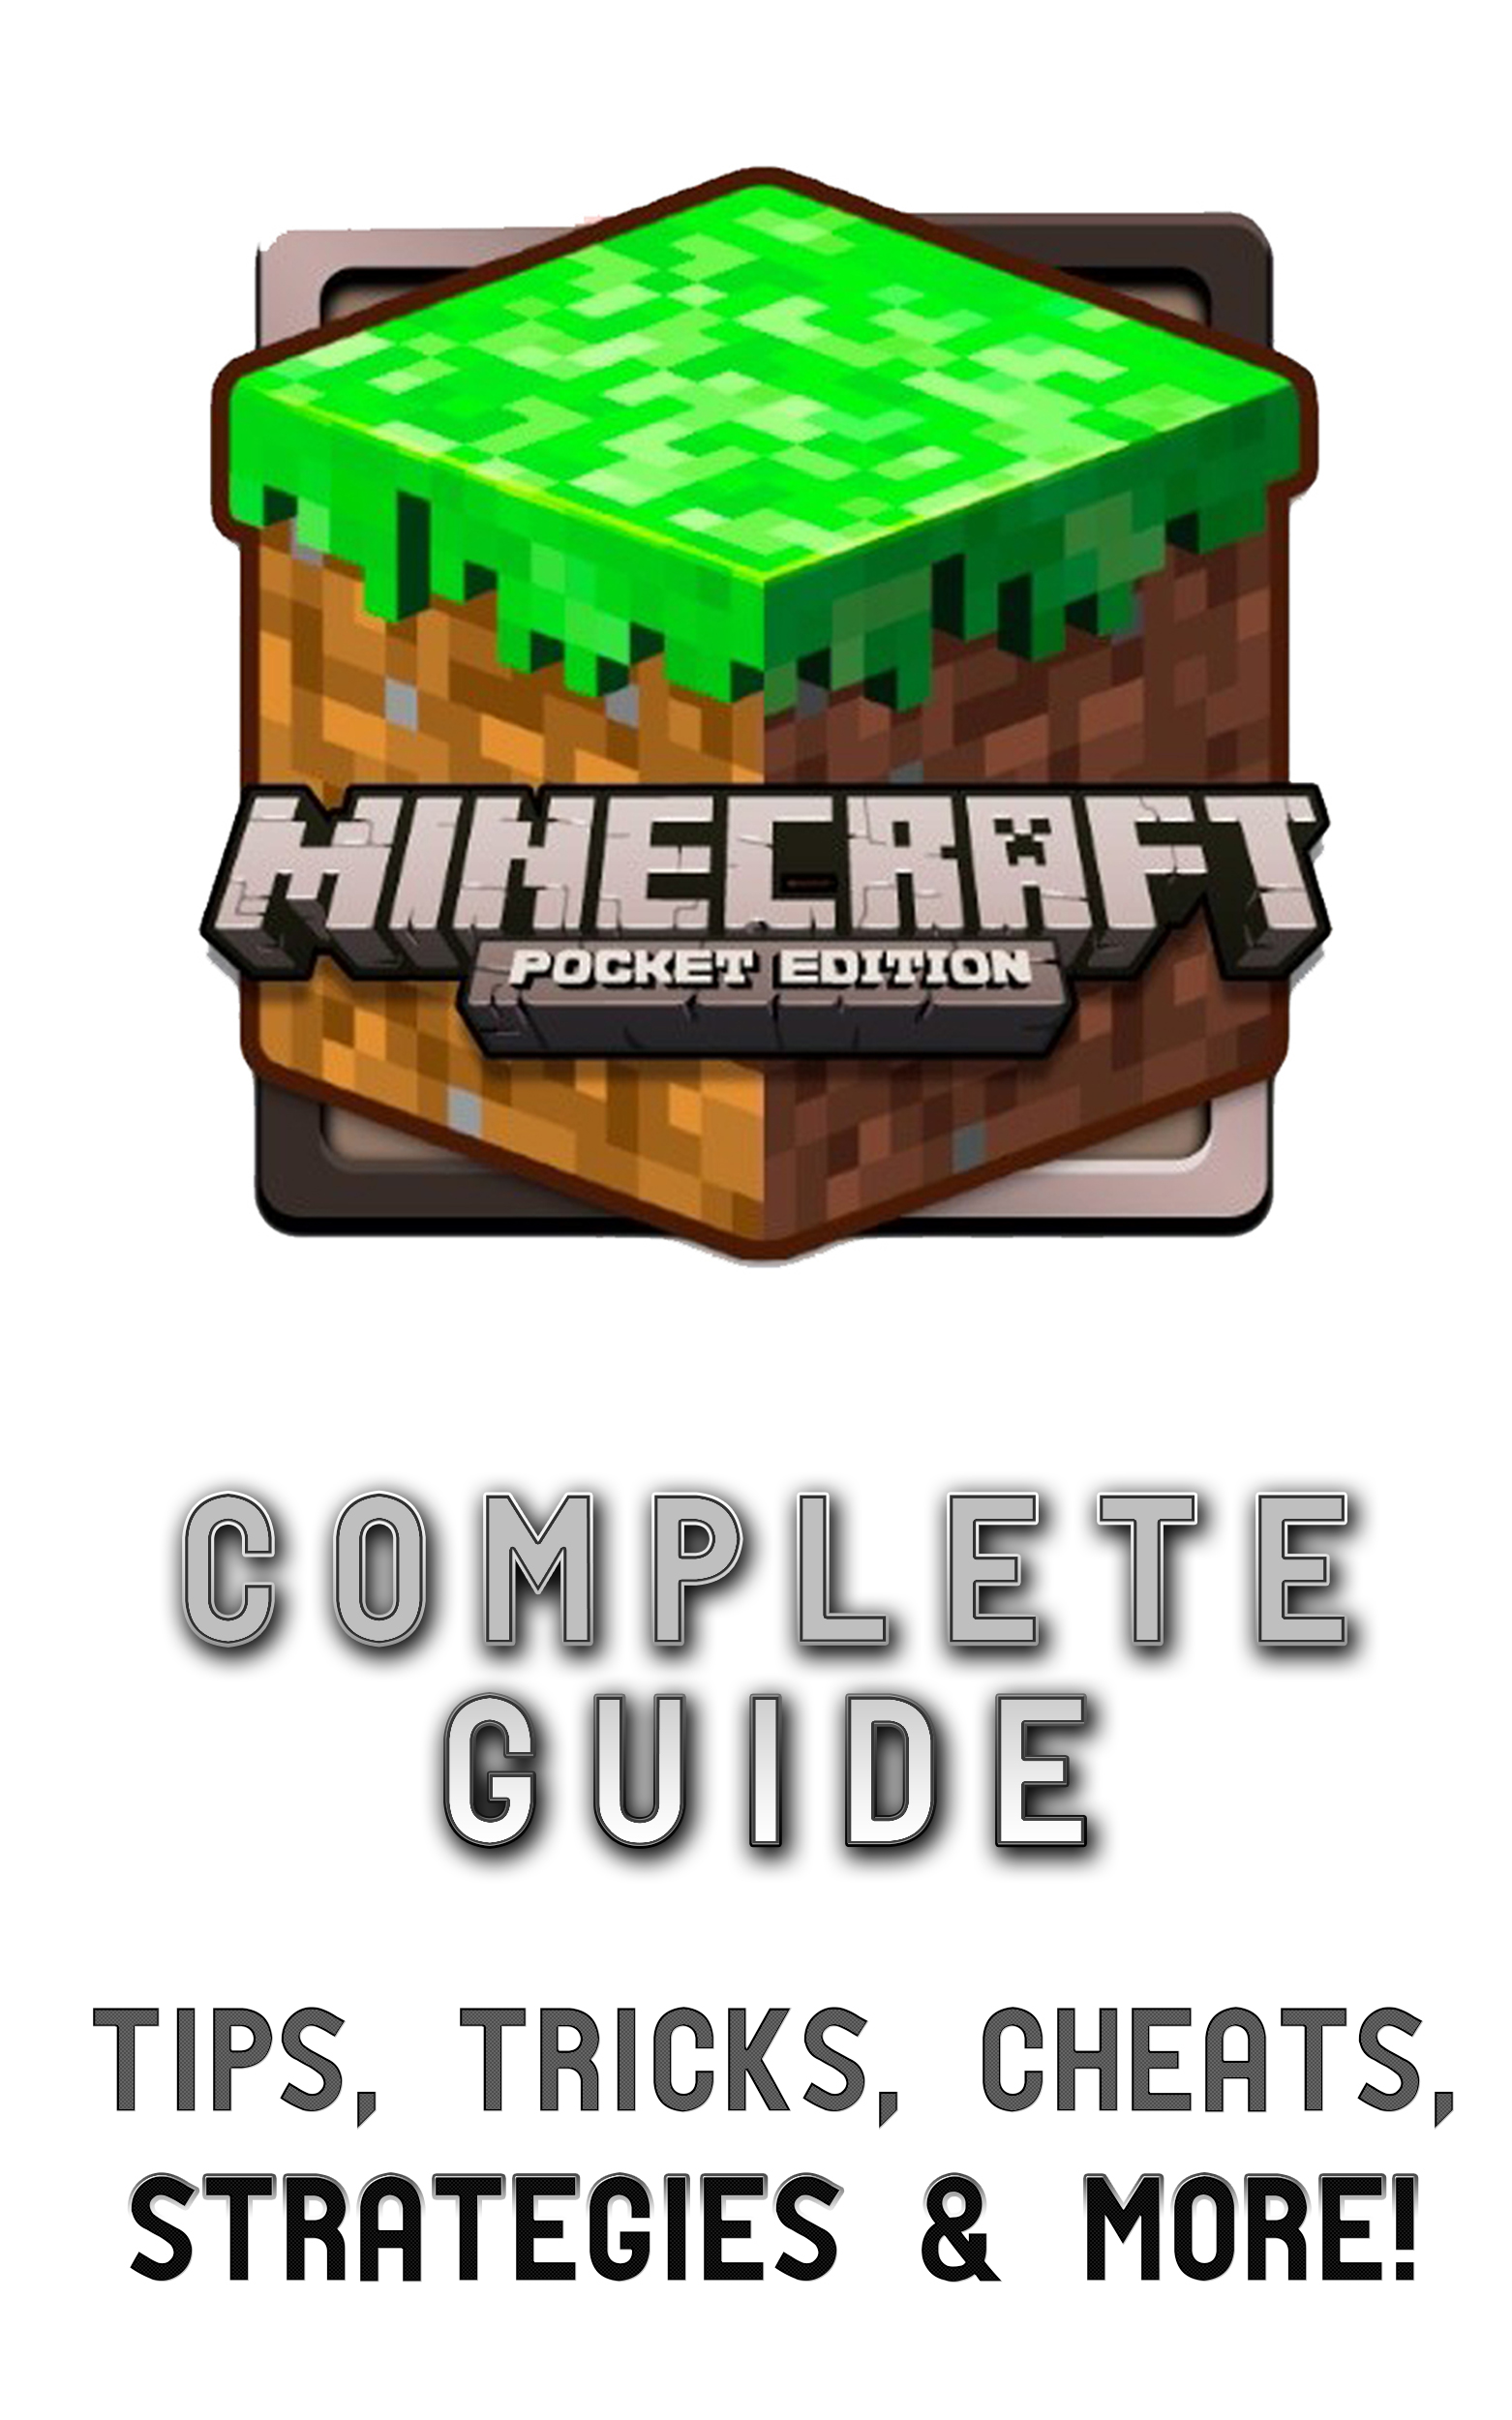 Minecraft - Pocket Edition (New for 2013) Complete Walkthrough Game Guide with Tips, Tricks, Strategies, Cheats & MORE!